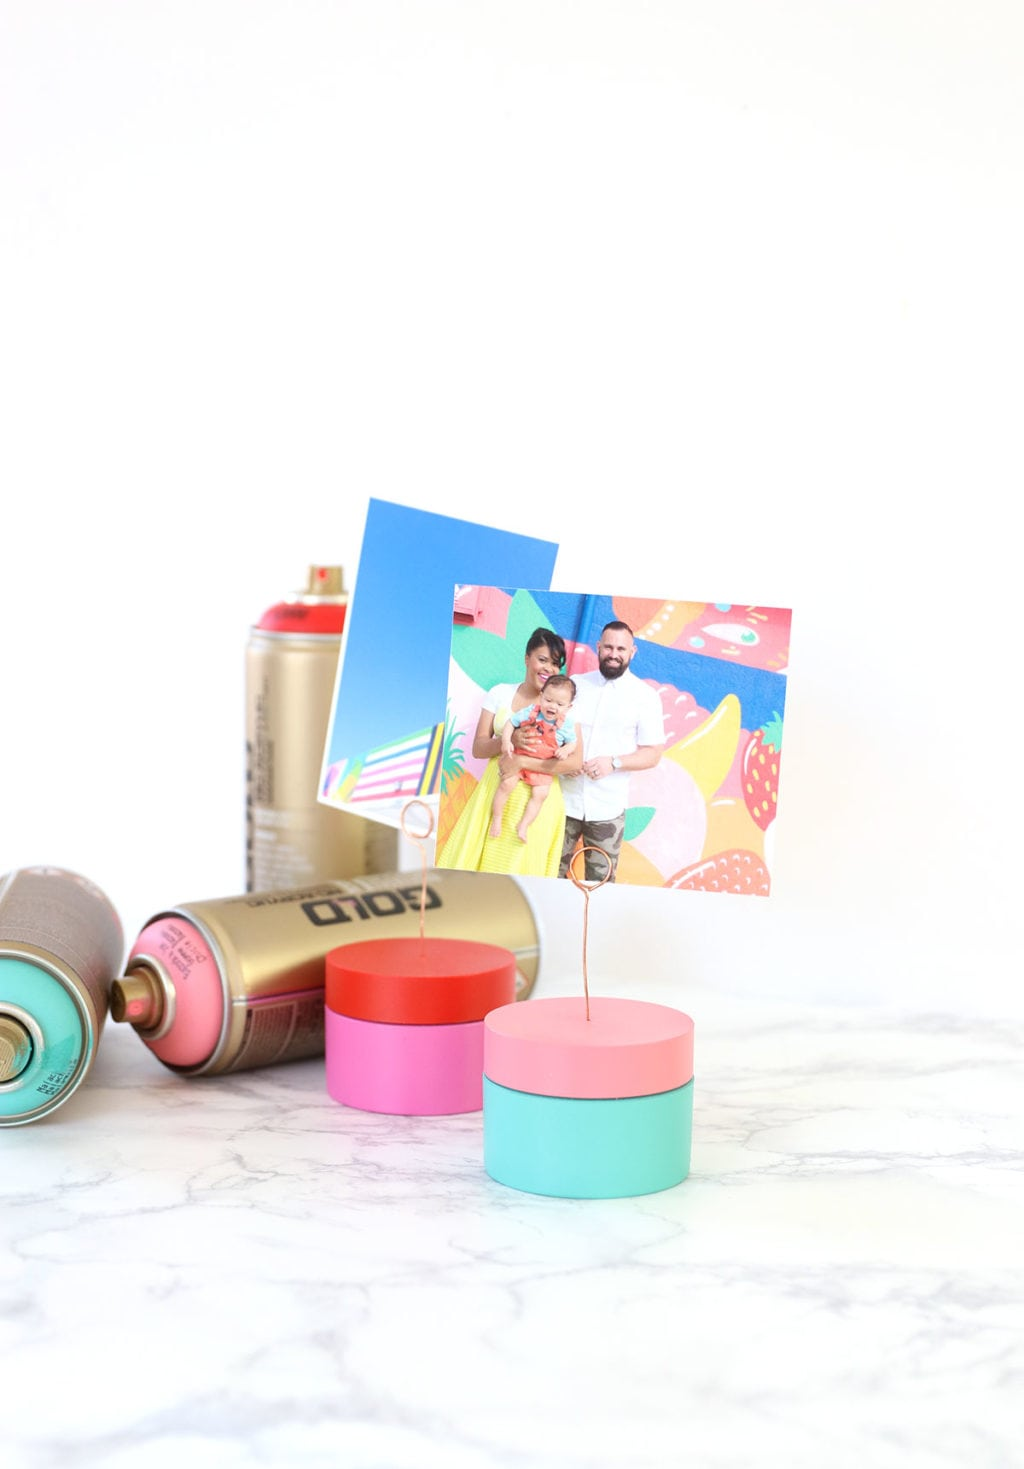 Learn how to make an upcycled photo holder using your empty beauty product packaging